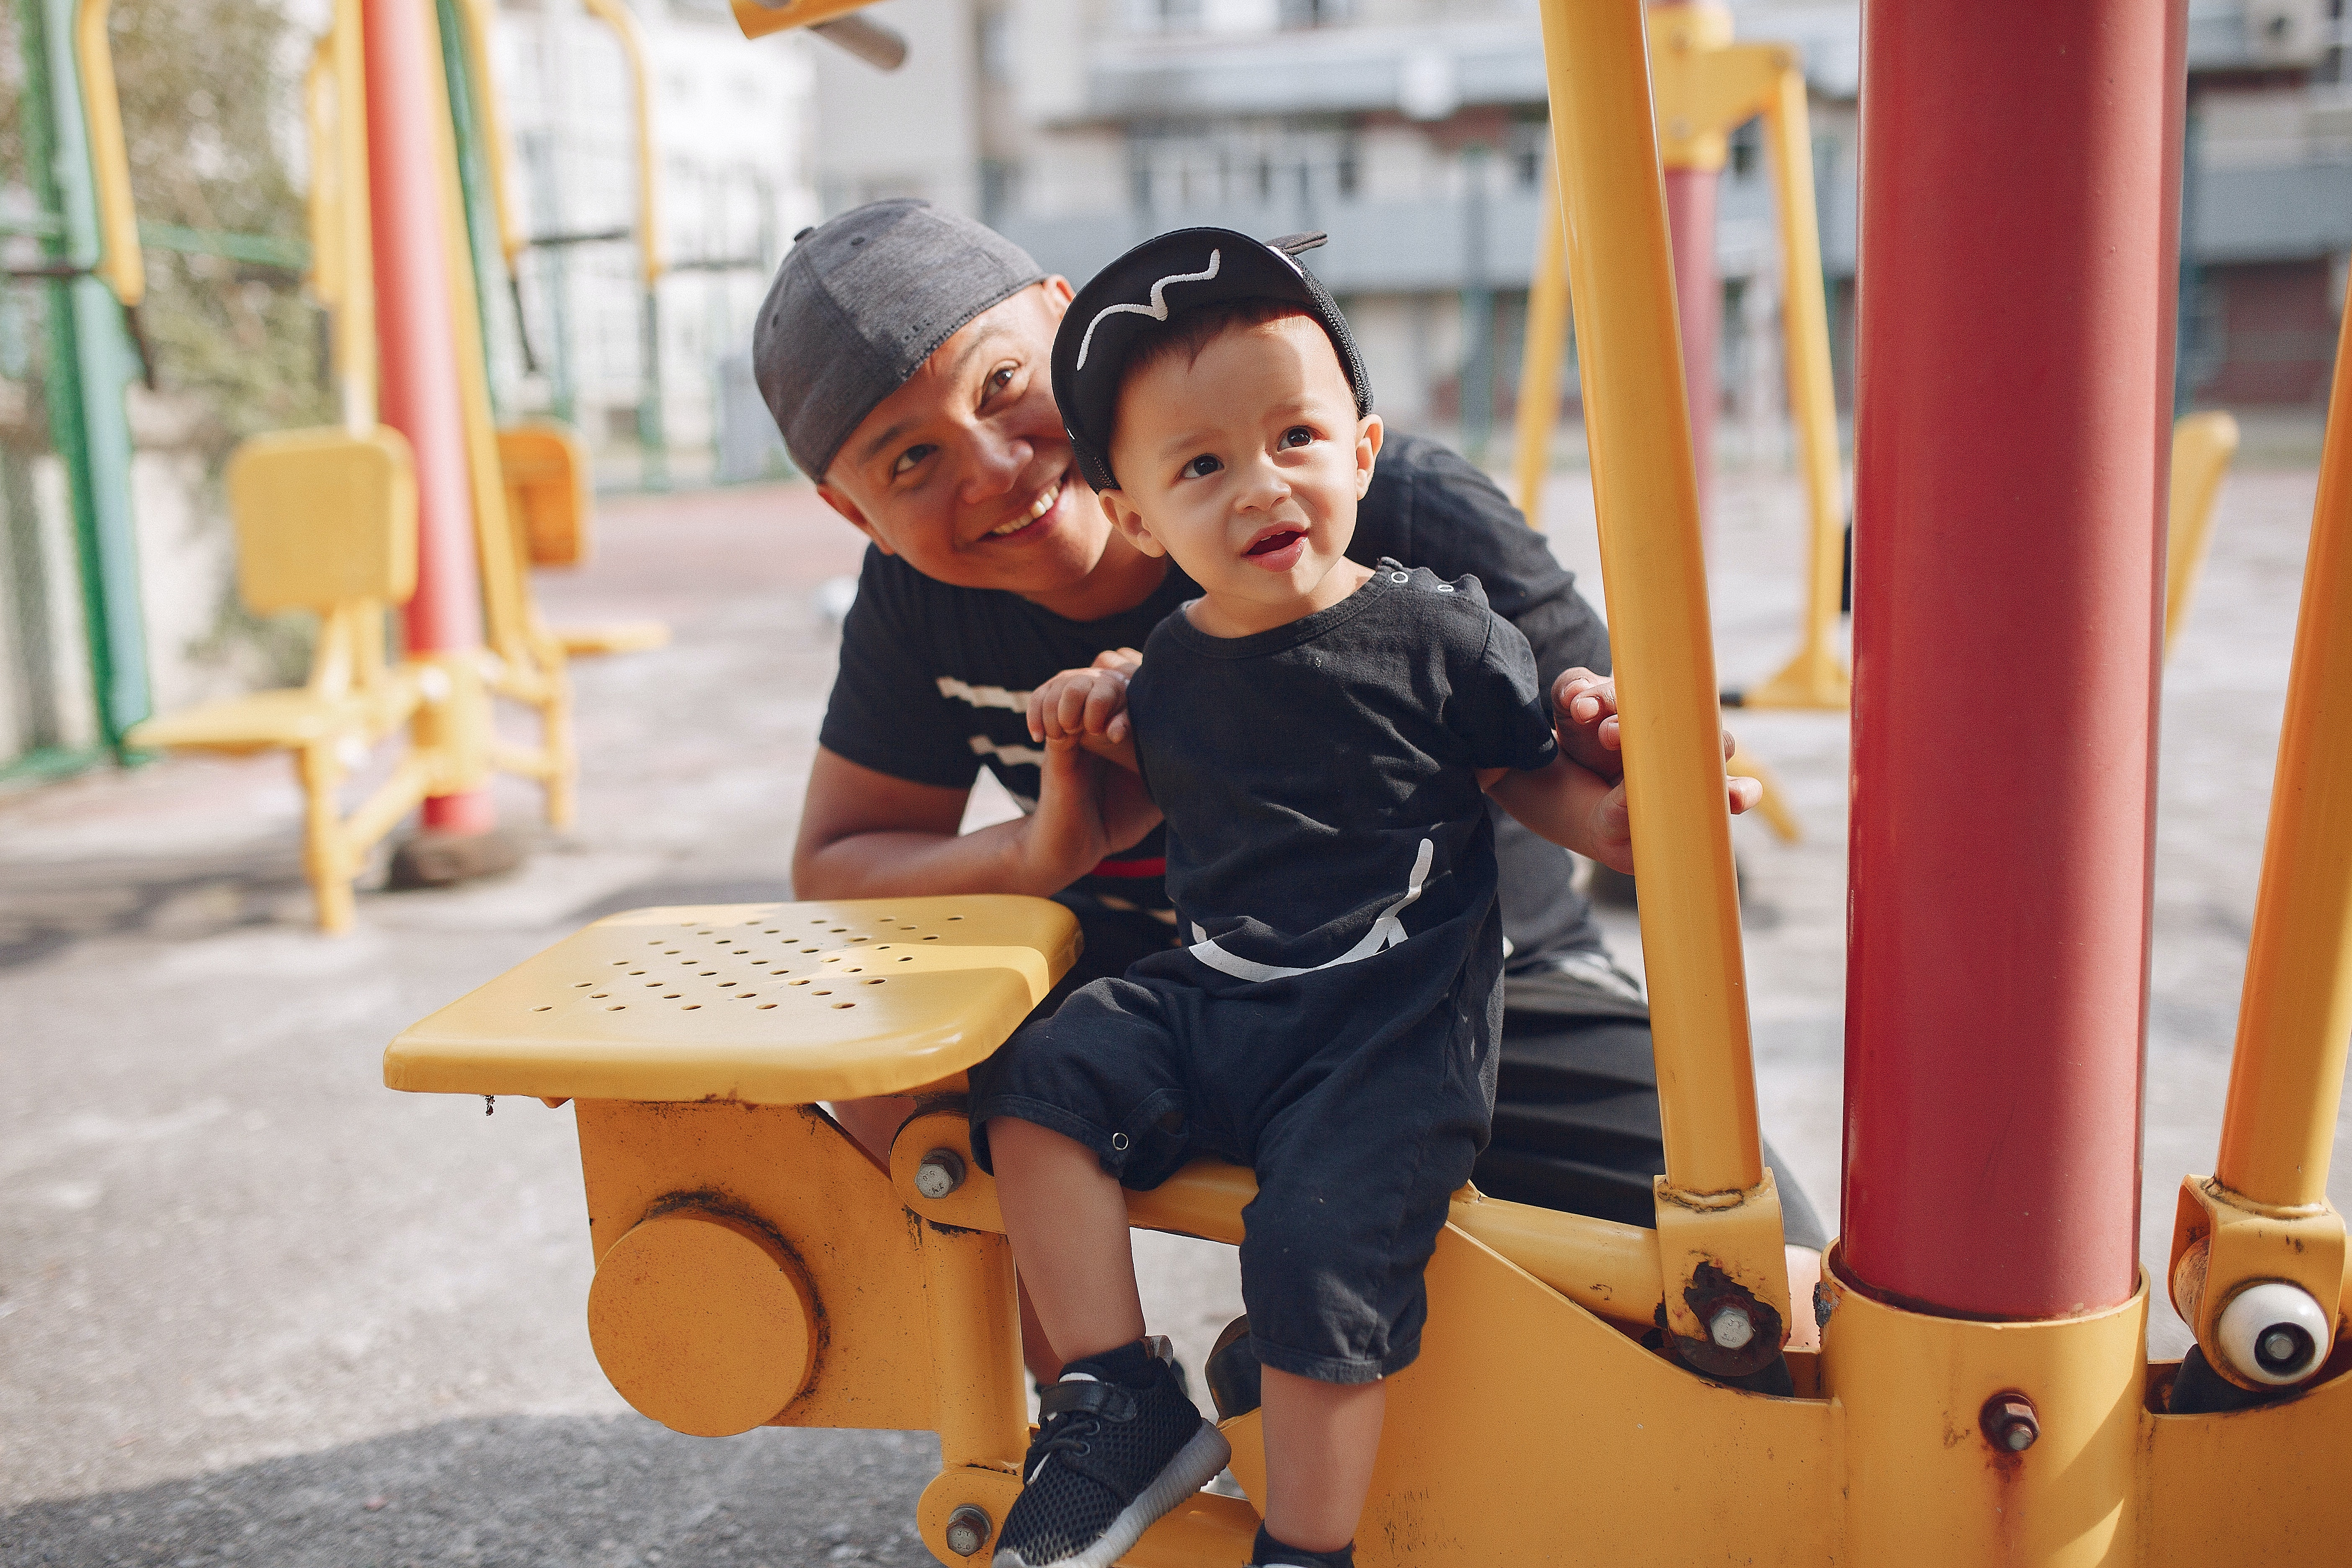 Father and son at a playground